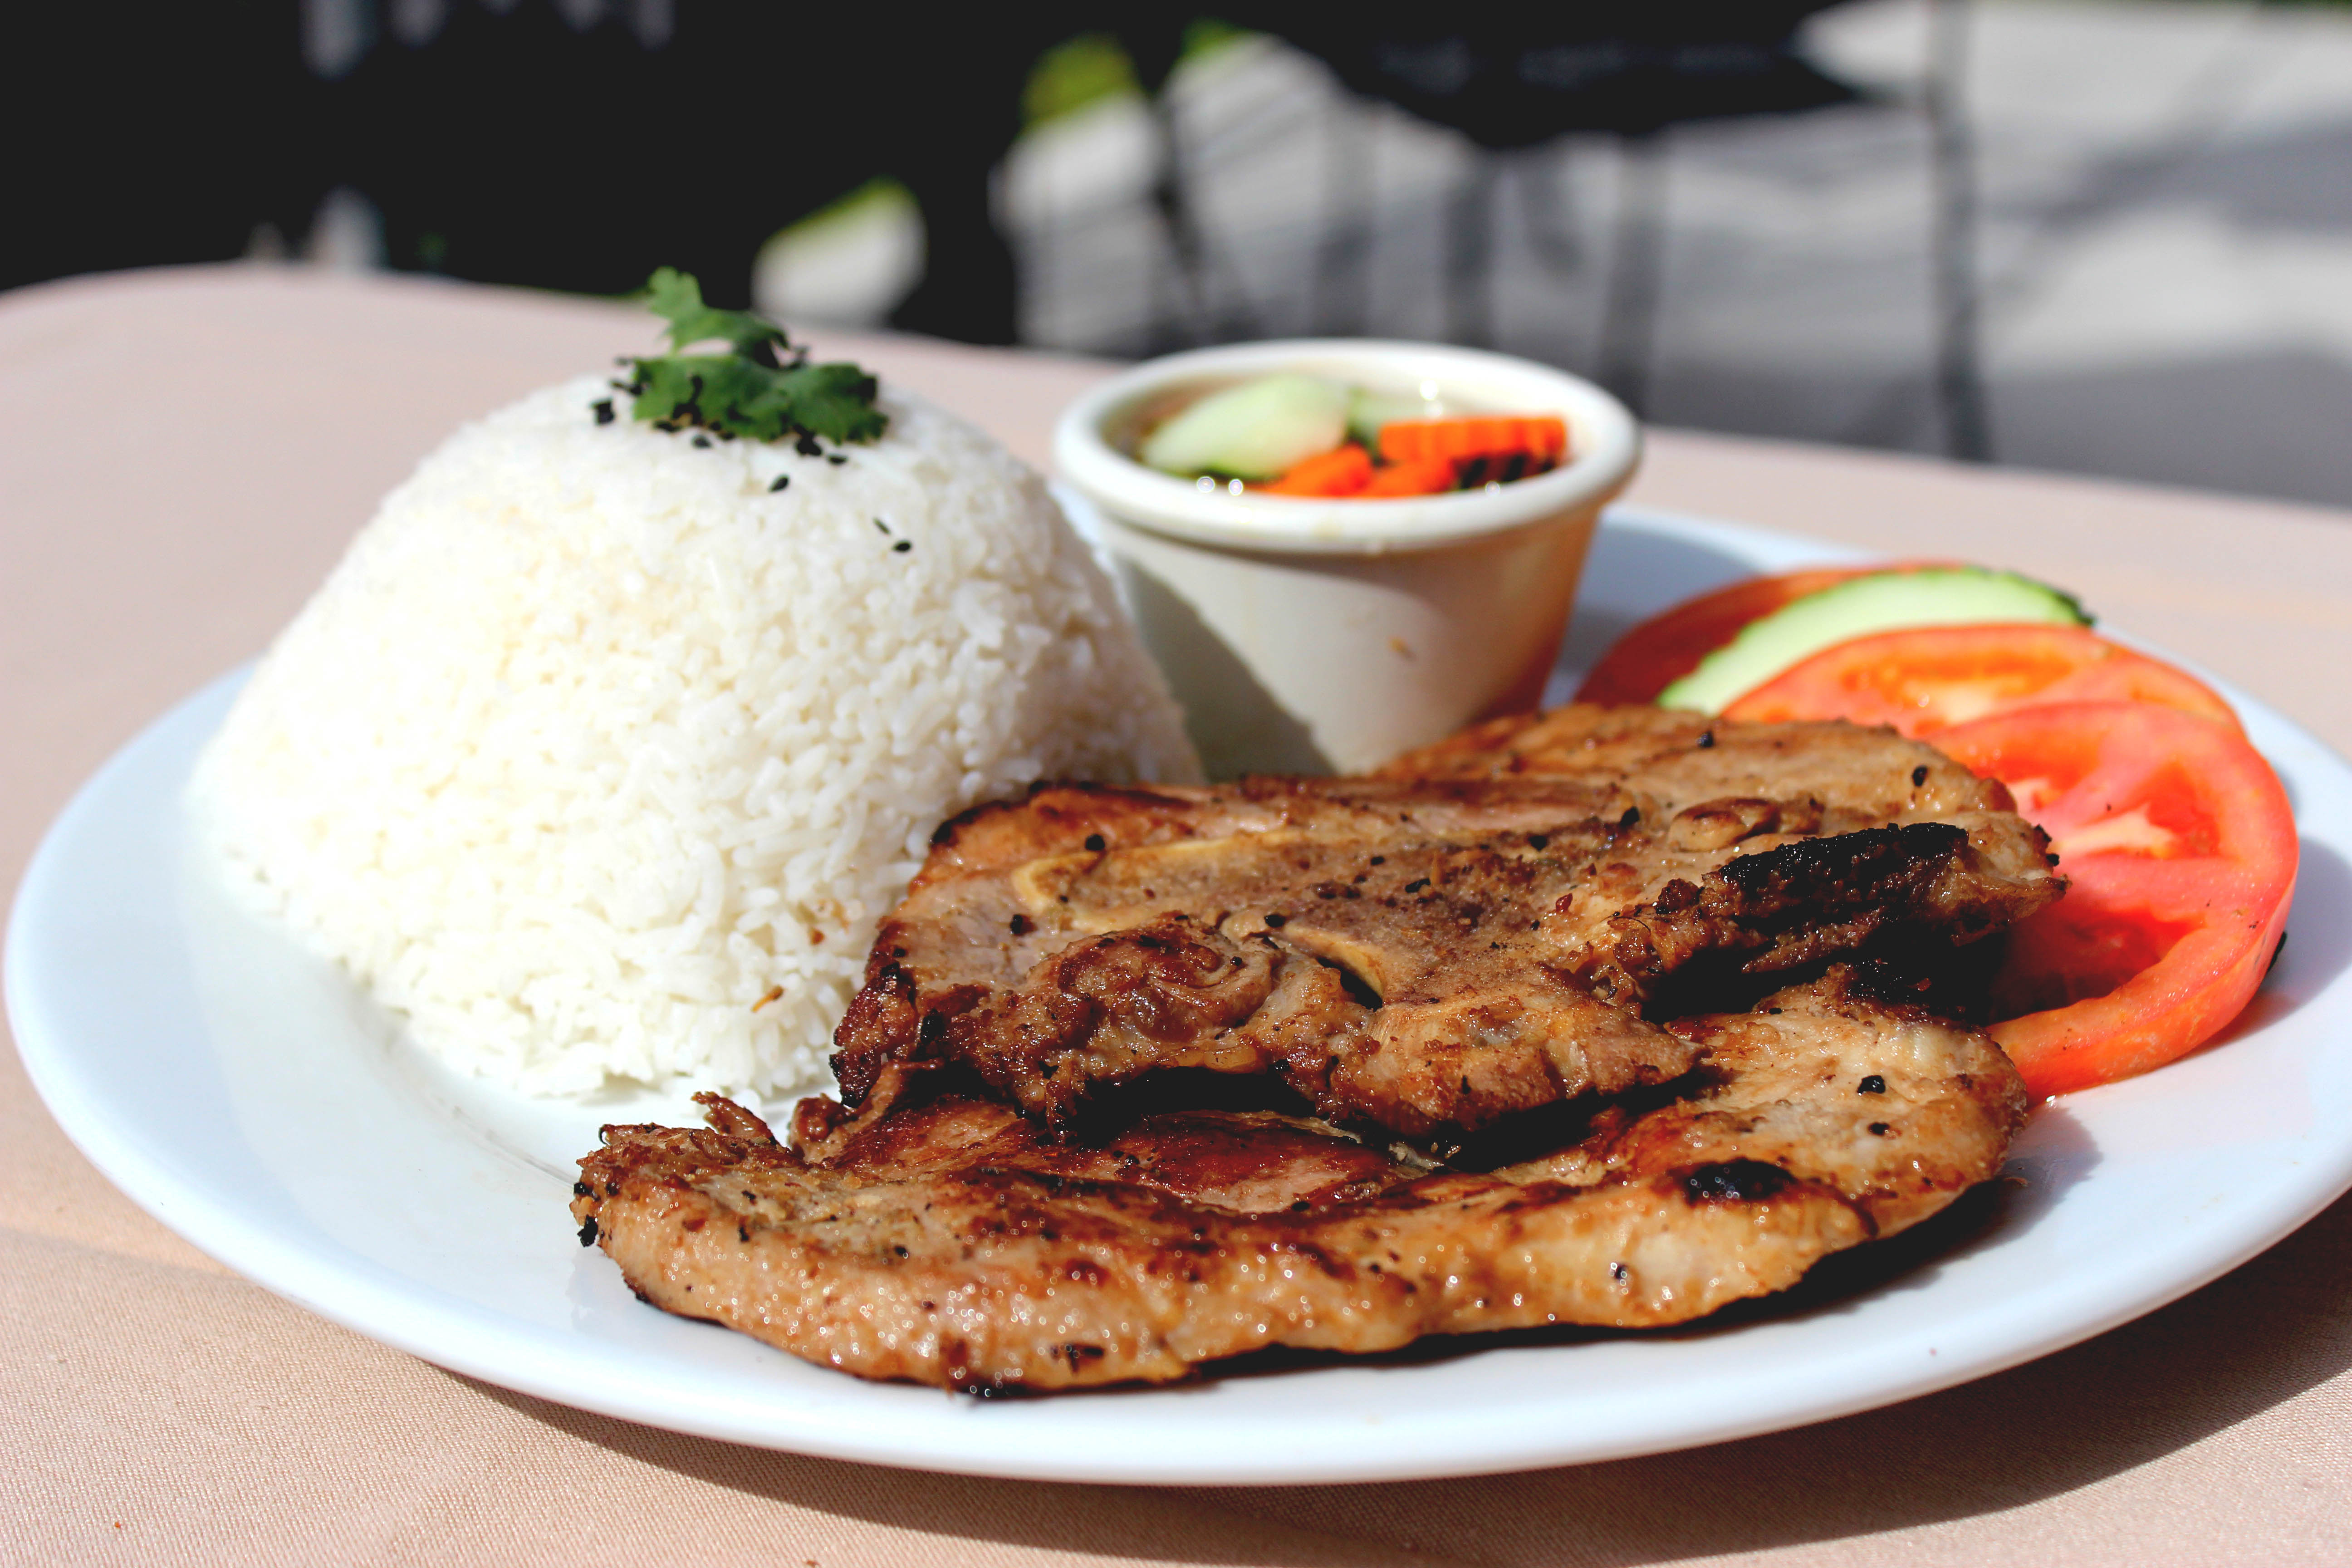 Lemon Grass Pork Chops